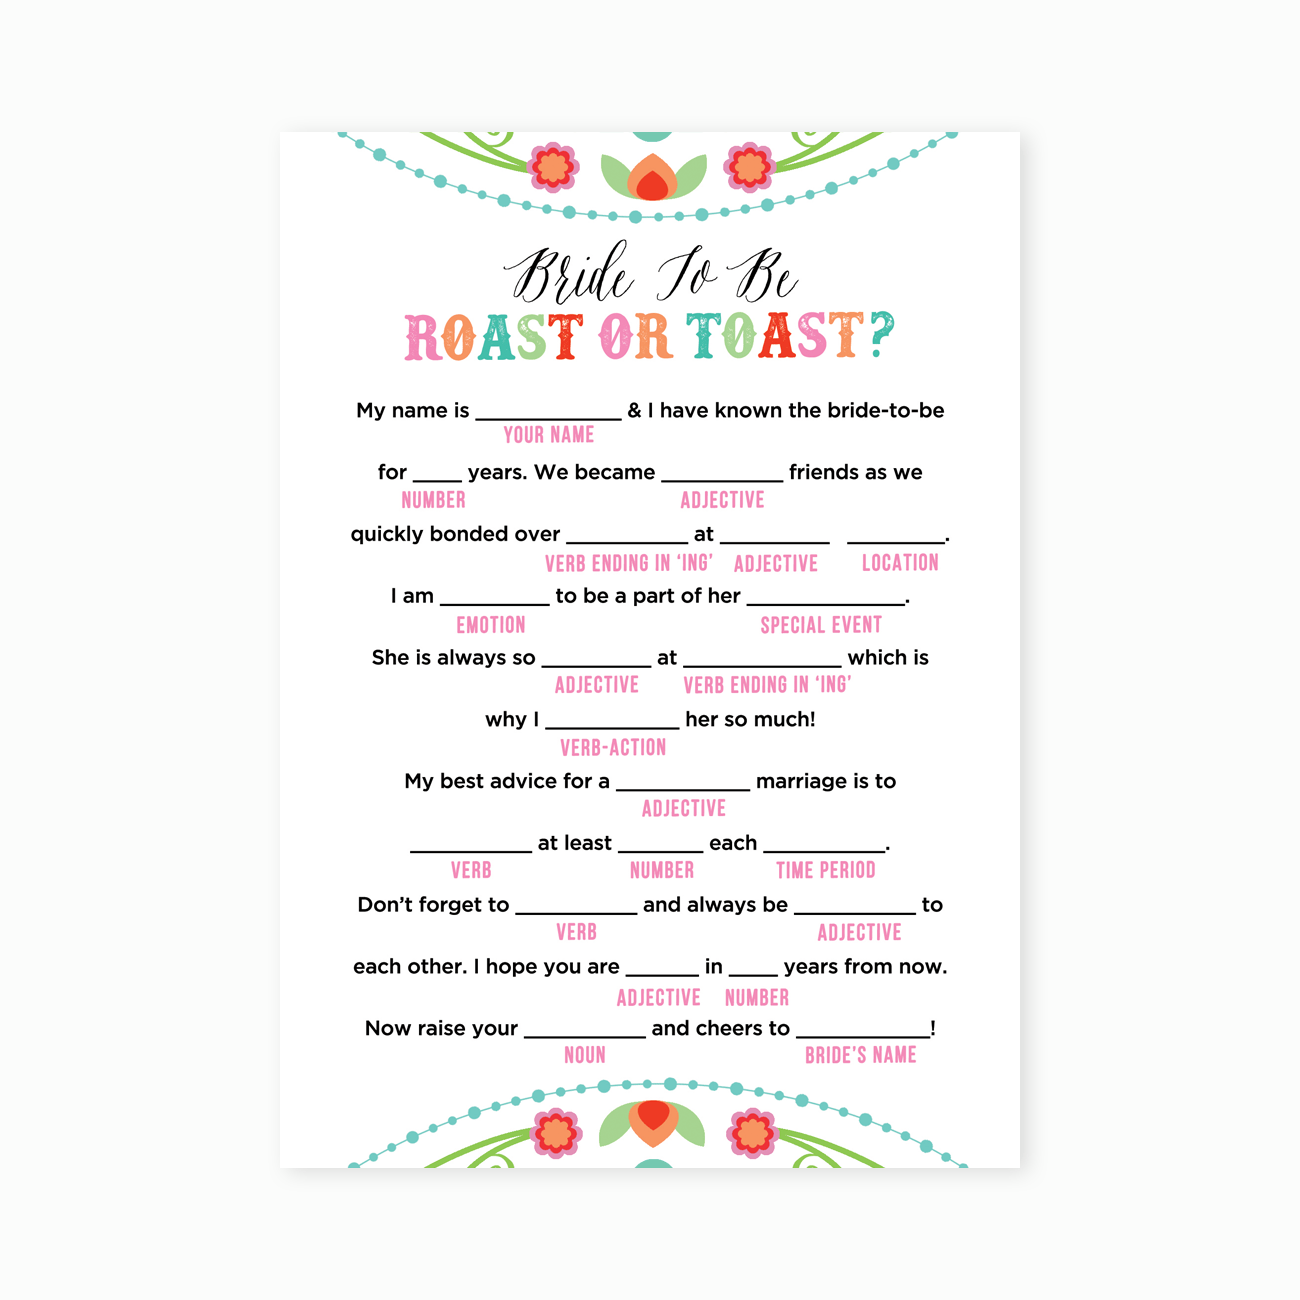 Printable Fiesta Roast Or Toast Bridal Shower Game